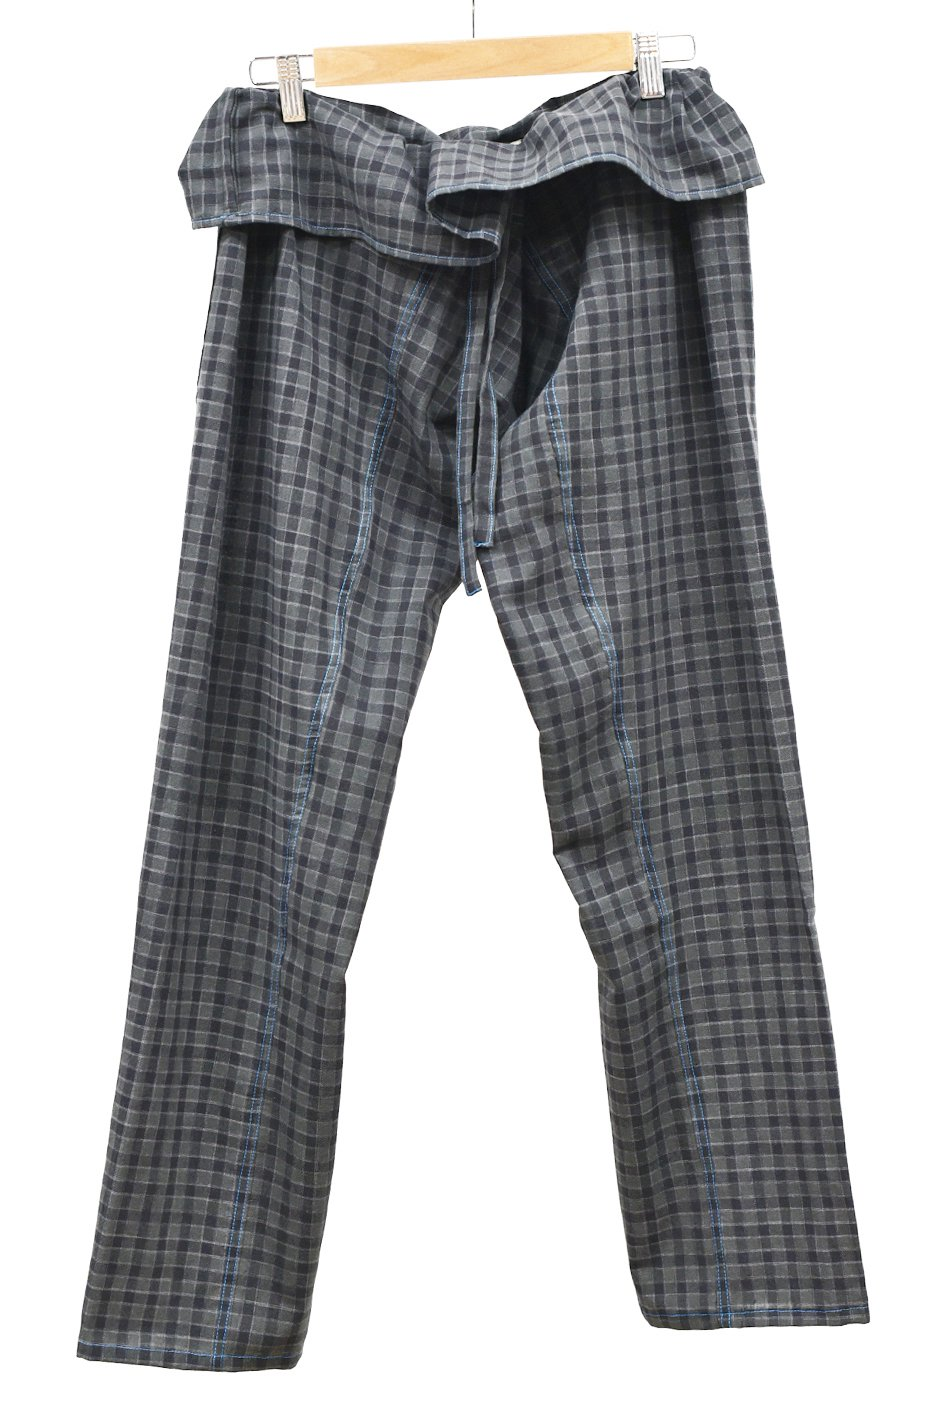 20%off! ARIGATO FAKKYU - アリガトファッキュ TAPERED THAI PANTS / GRAY